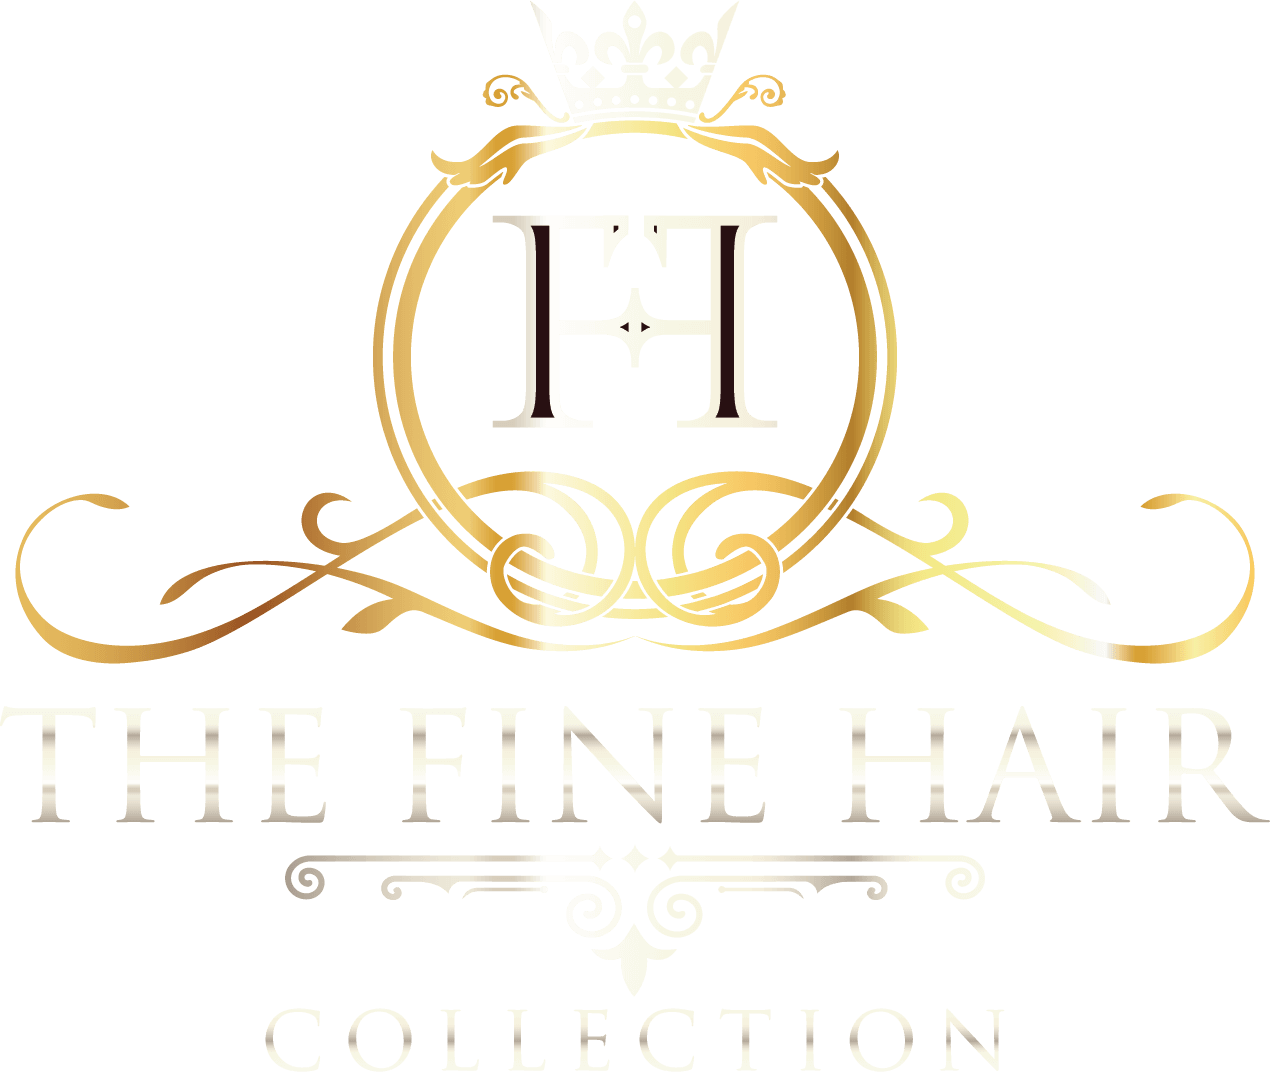 The Fine Hair Collection